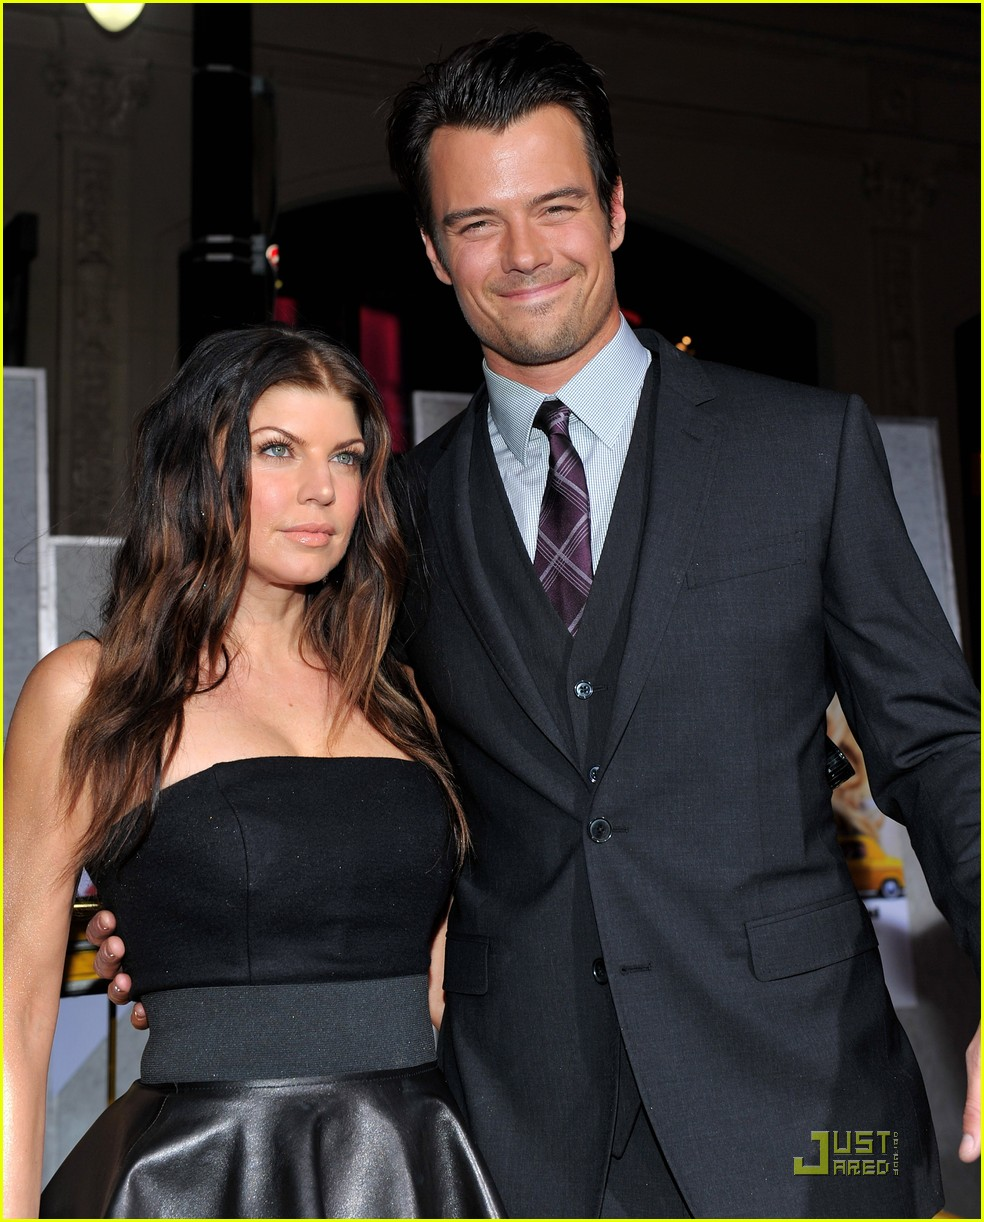 Josh Duhamel with beautiful, Wife Fergie Duhamel